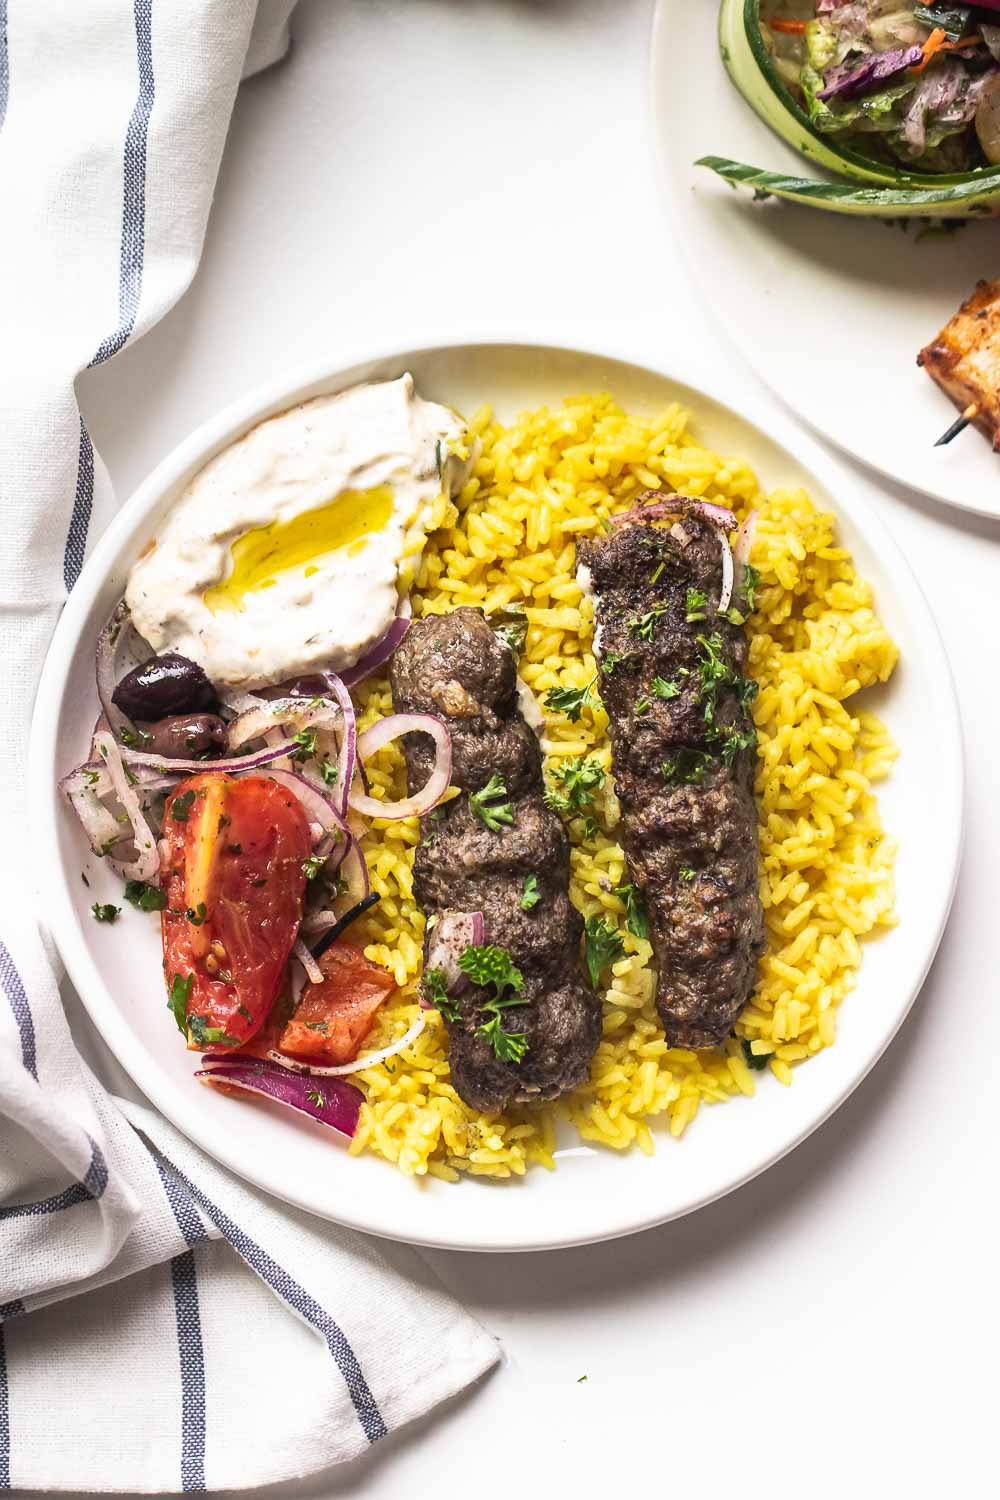 Fancy something different tonight? Try these budget-friendly, Middle Eastern-inspired lamb skewers that are easy to make and tasty. One grill, super fast to make, and full of smoky flavors.